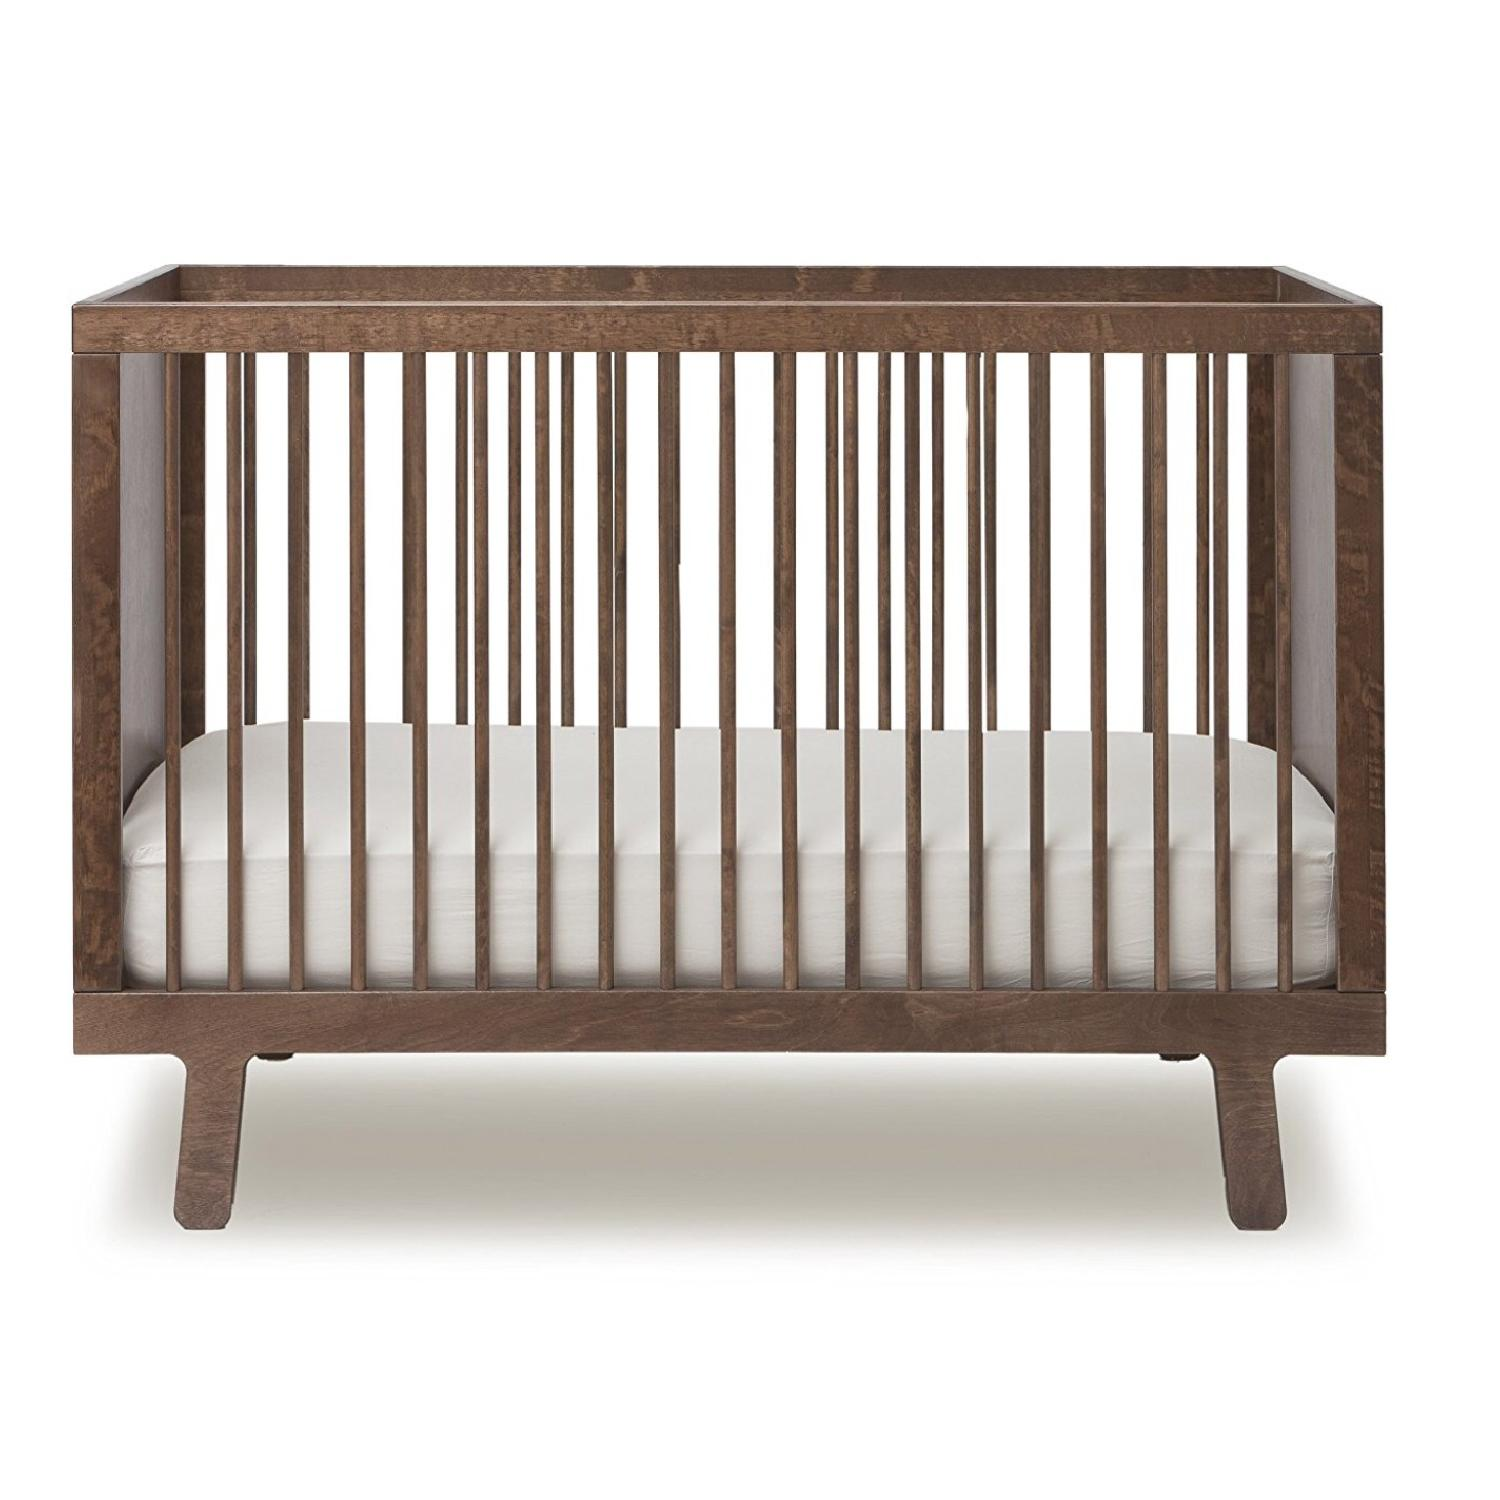 4dea29fd2702 ... Oeuf Sparrow Crib w/ Changing Table Top-2 ...